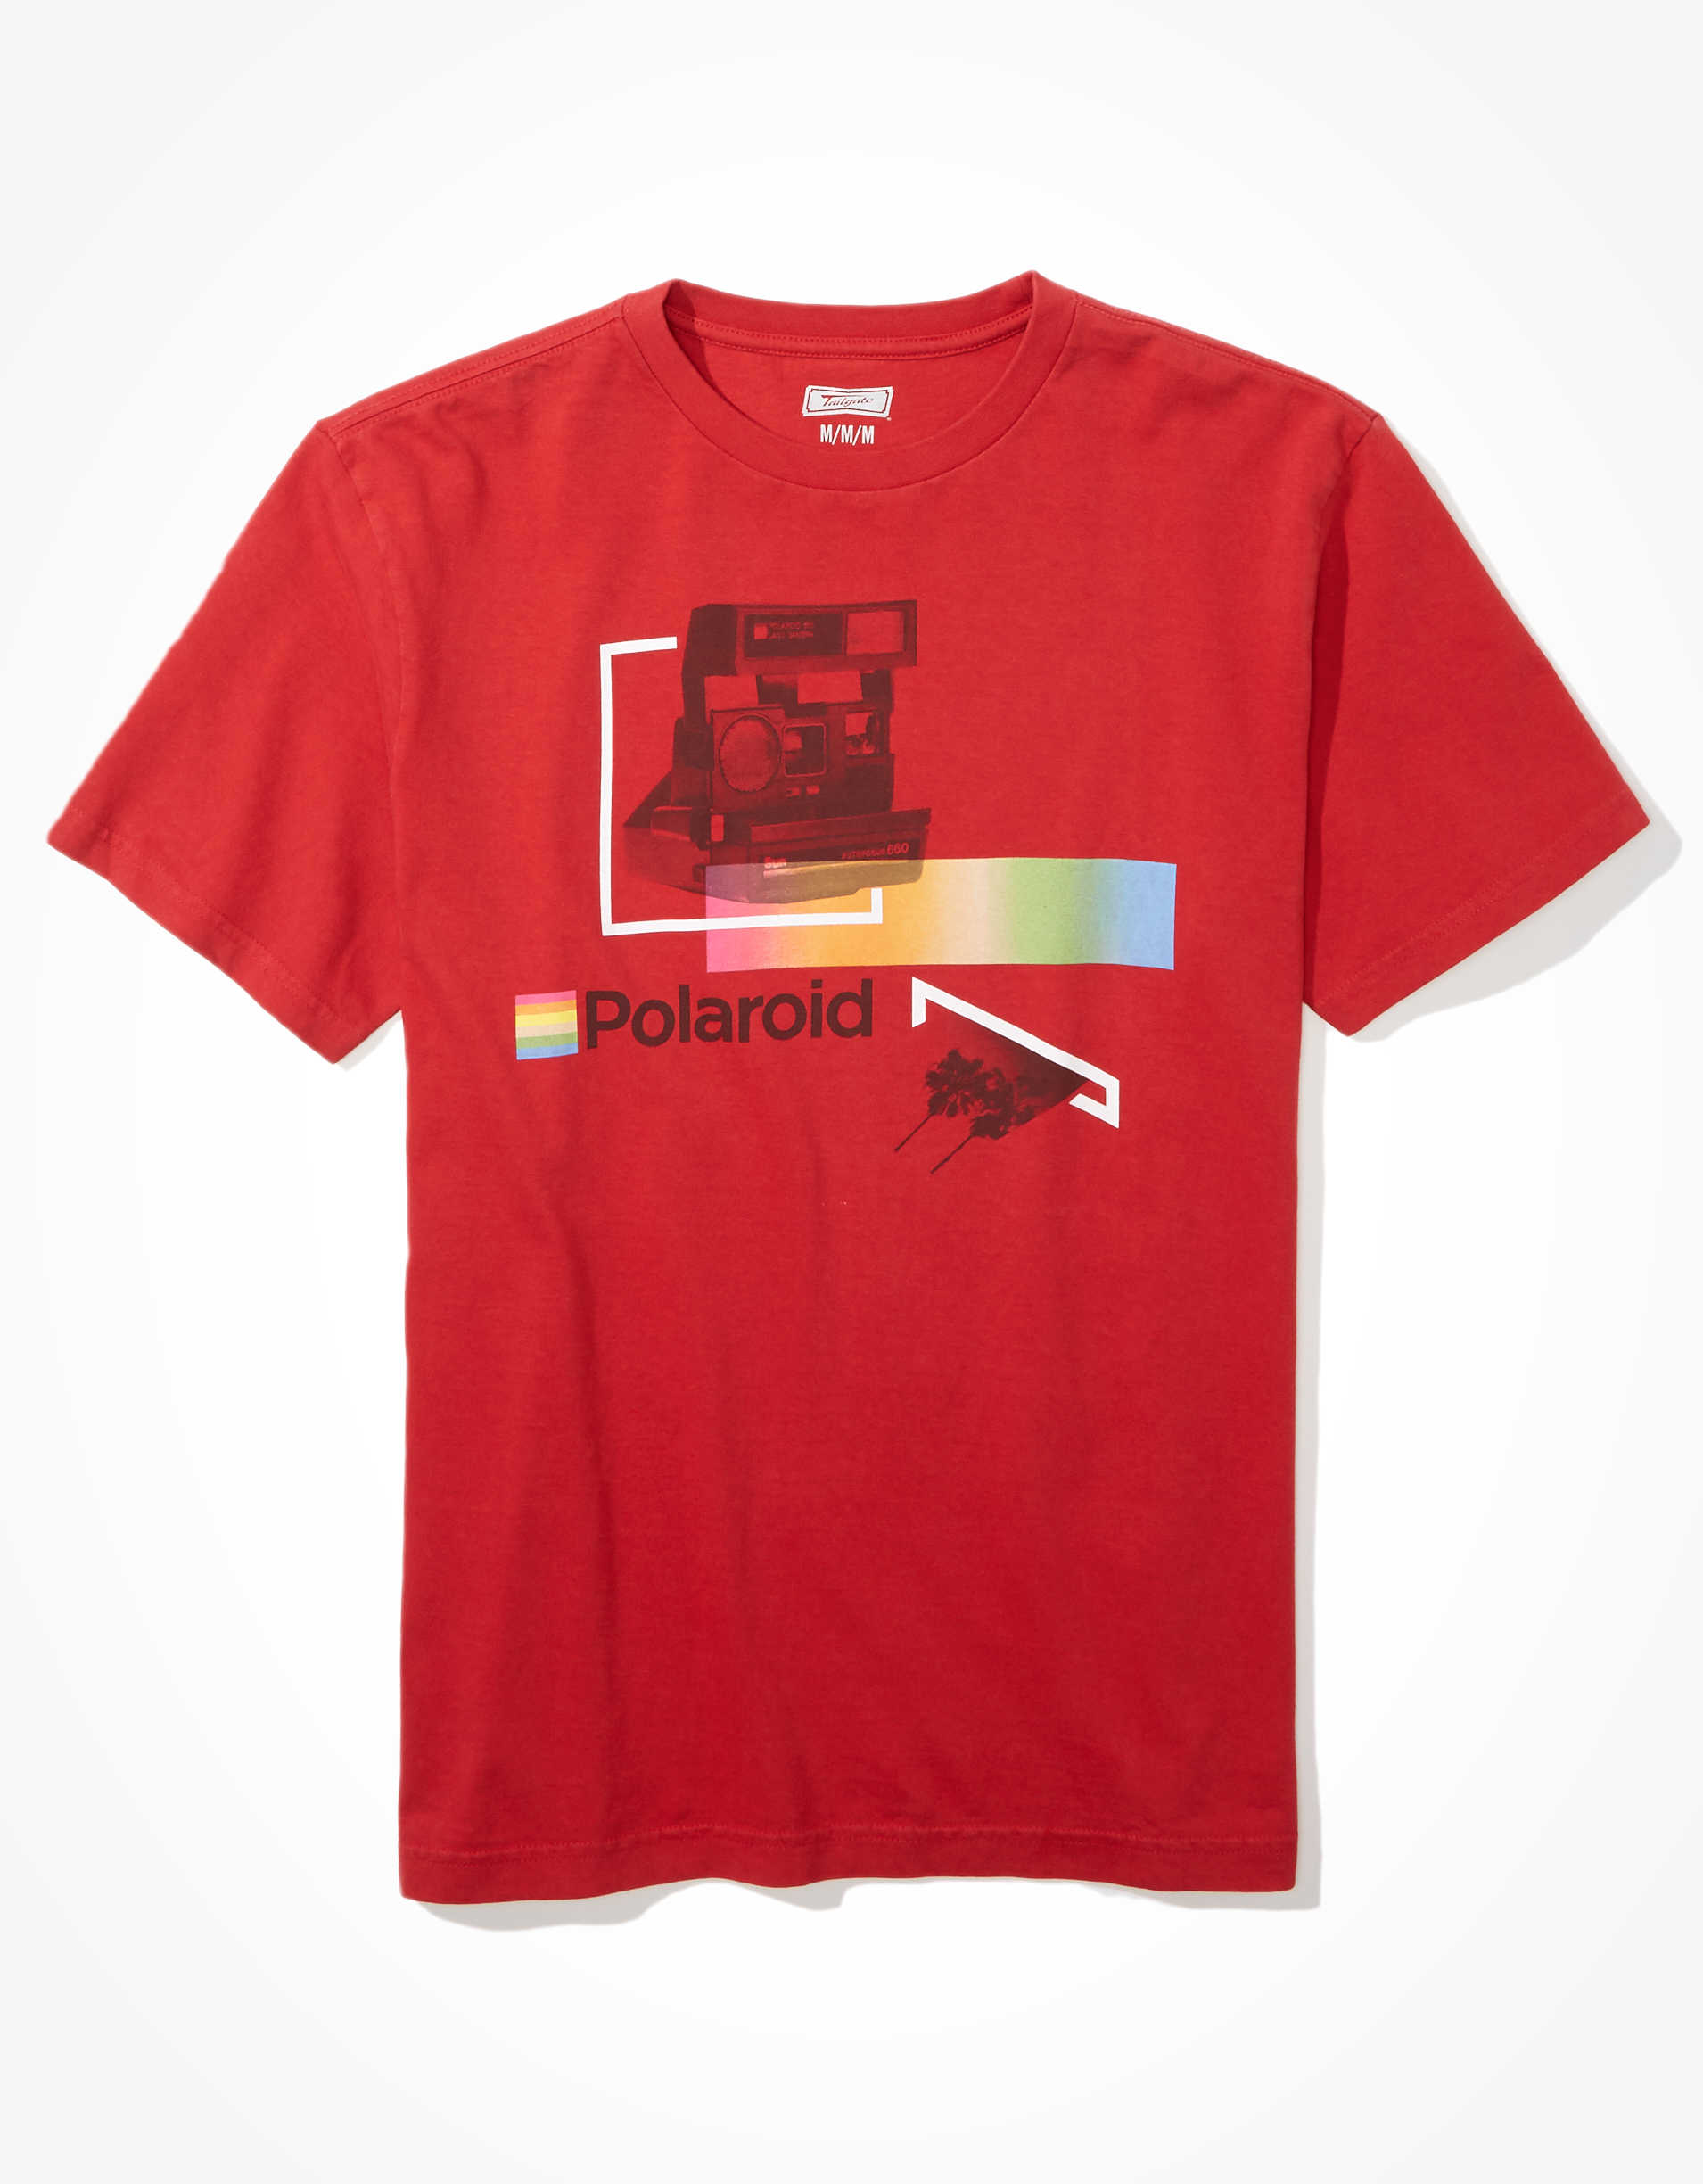 Tailgate Men's Polaroid Graphic T-Shirt